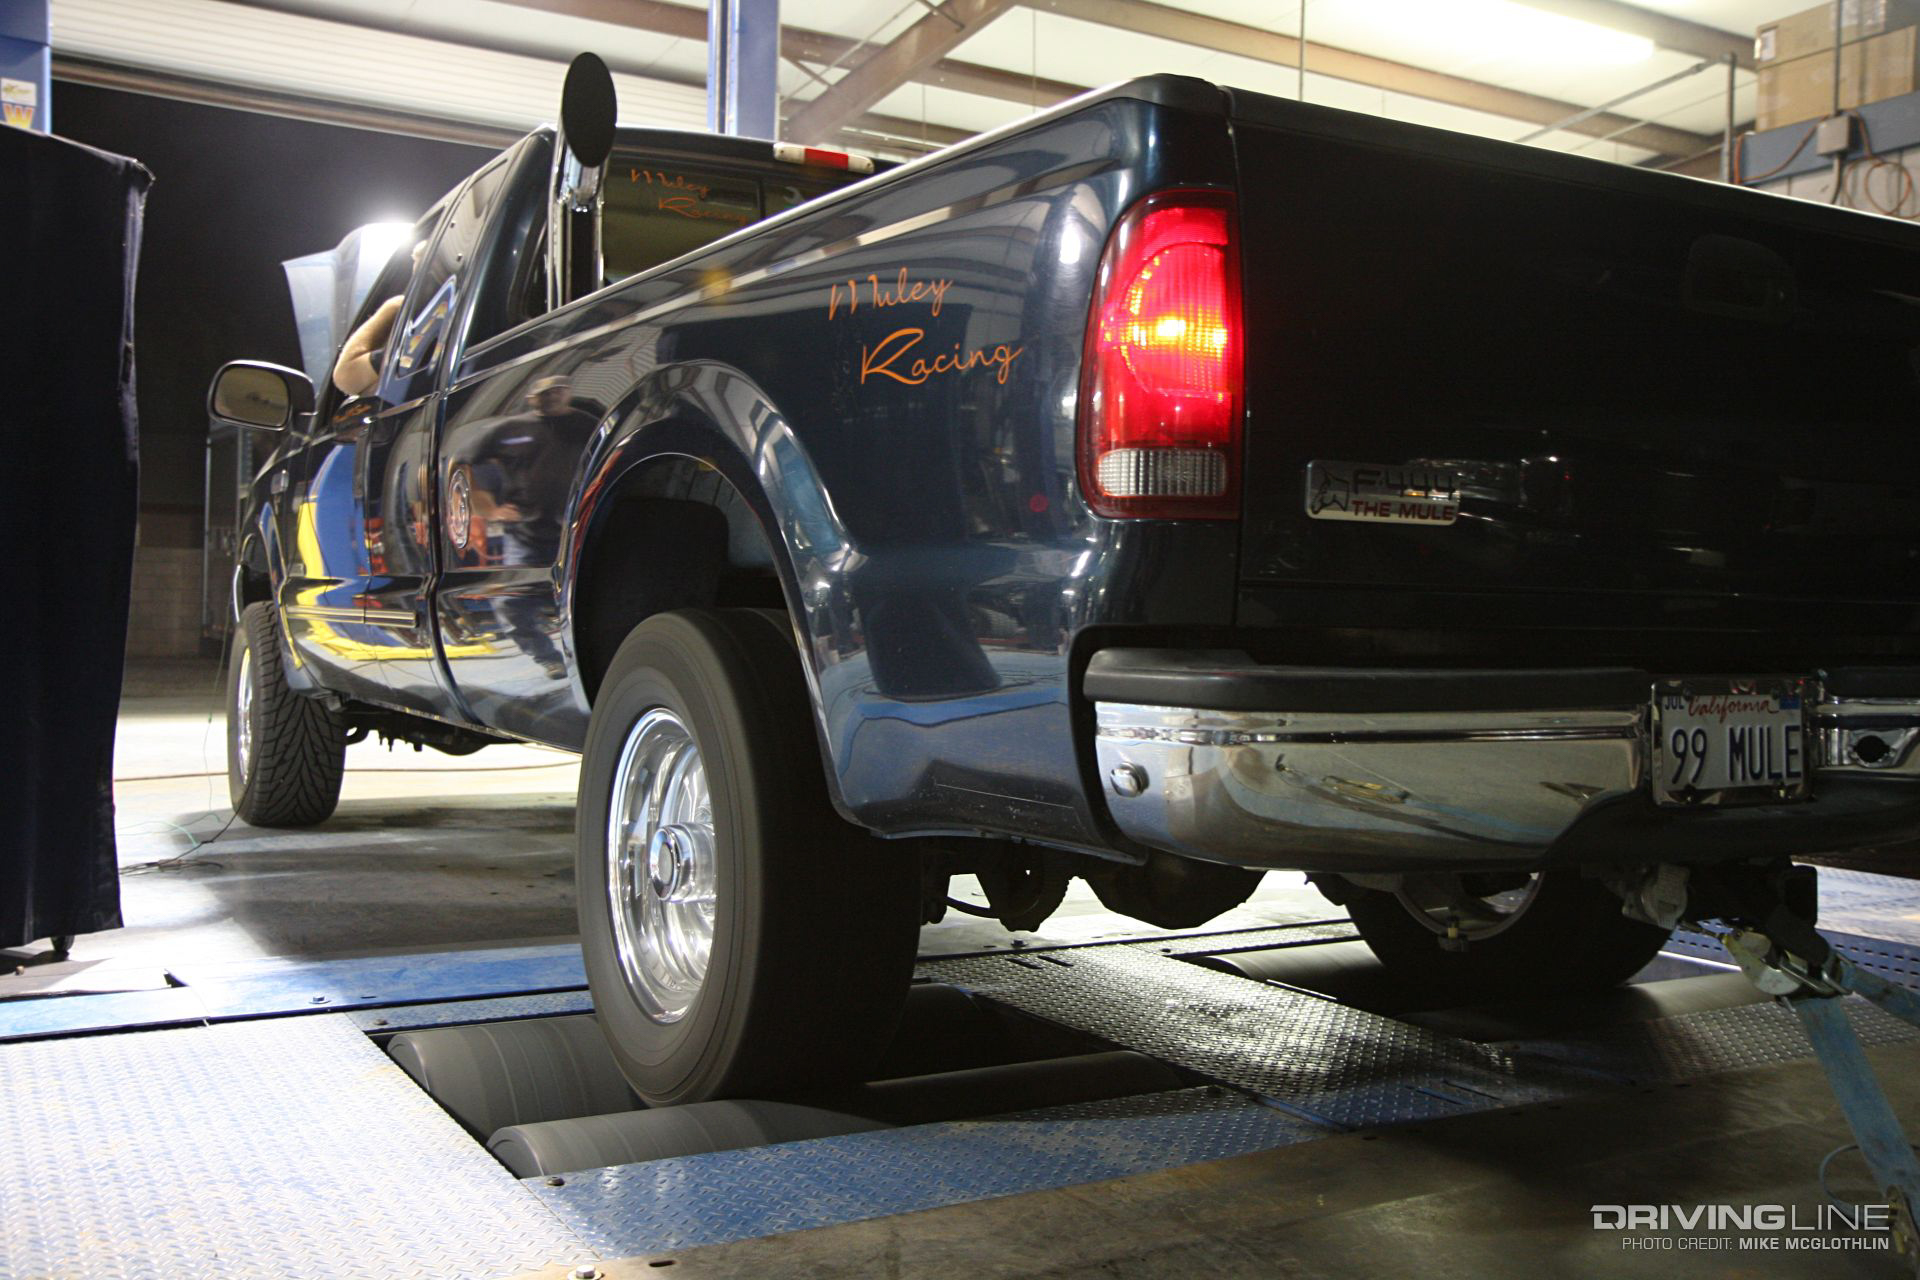 Diesel Horsepower Hunting: The What, How and Why of Chassis Dyno